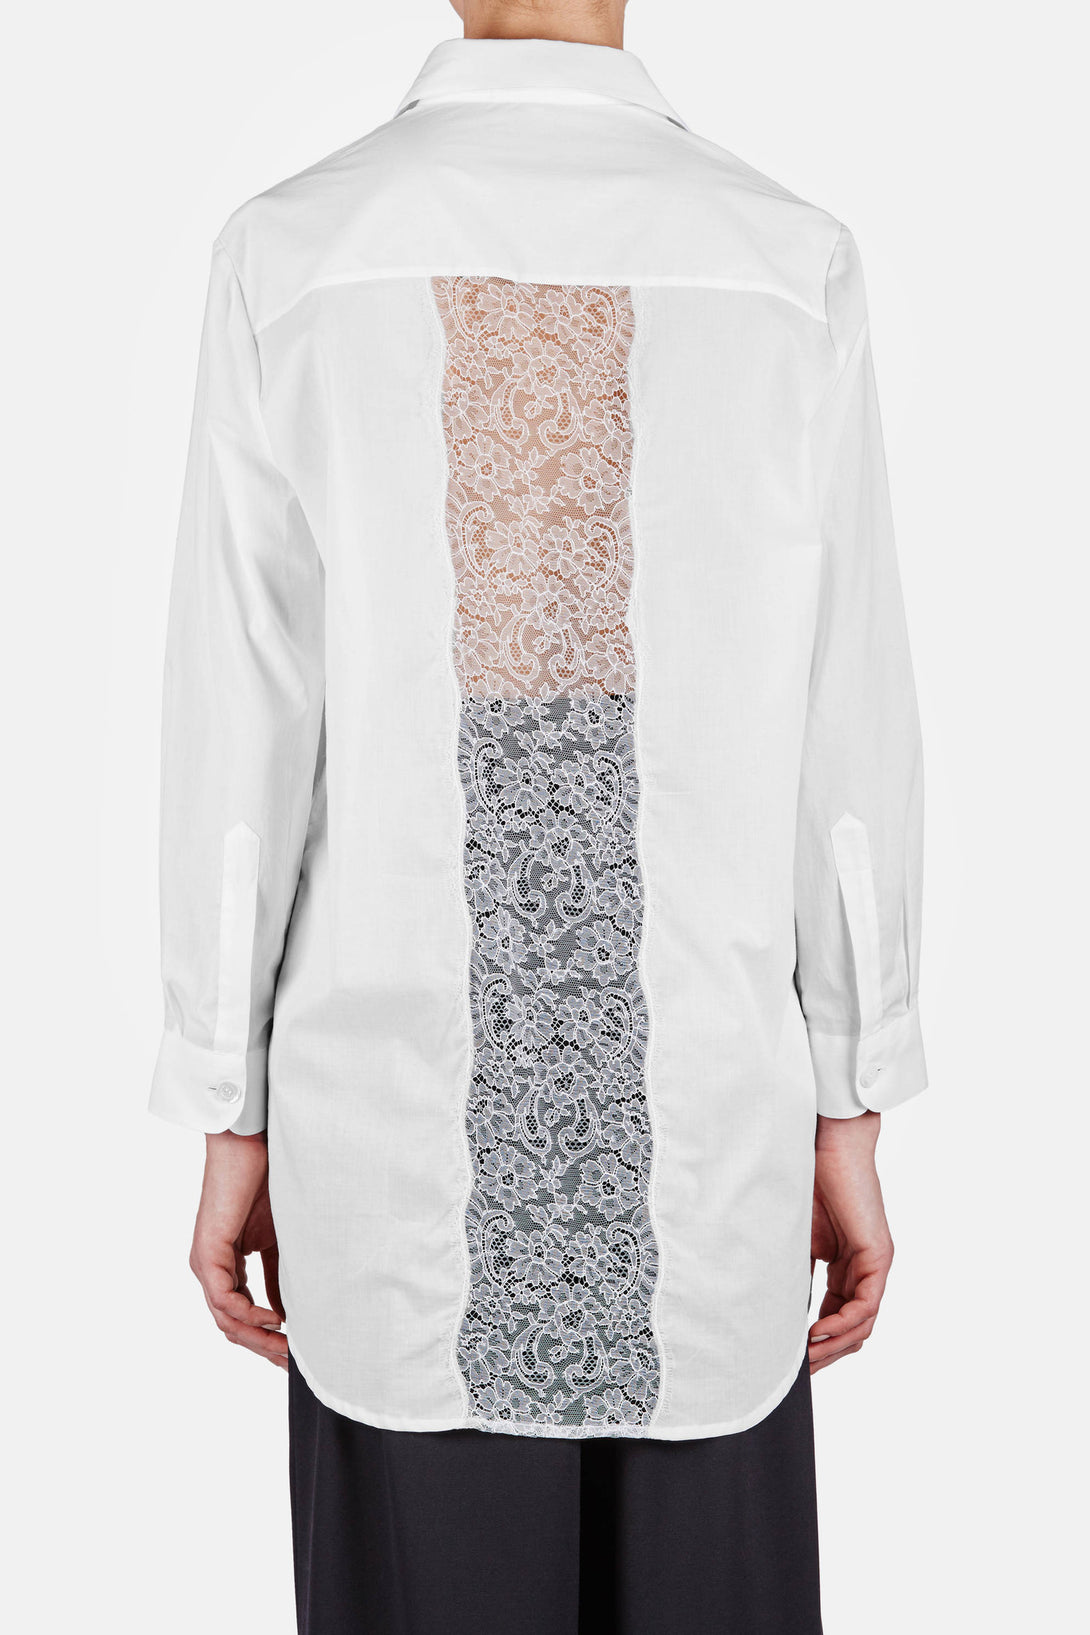 Marylin Shirt - White